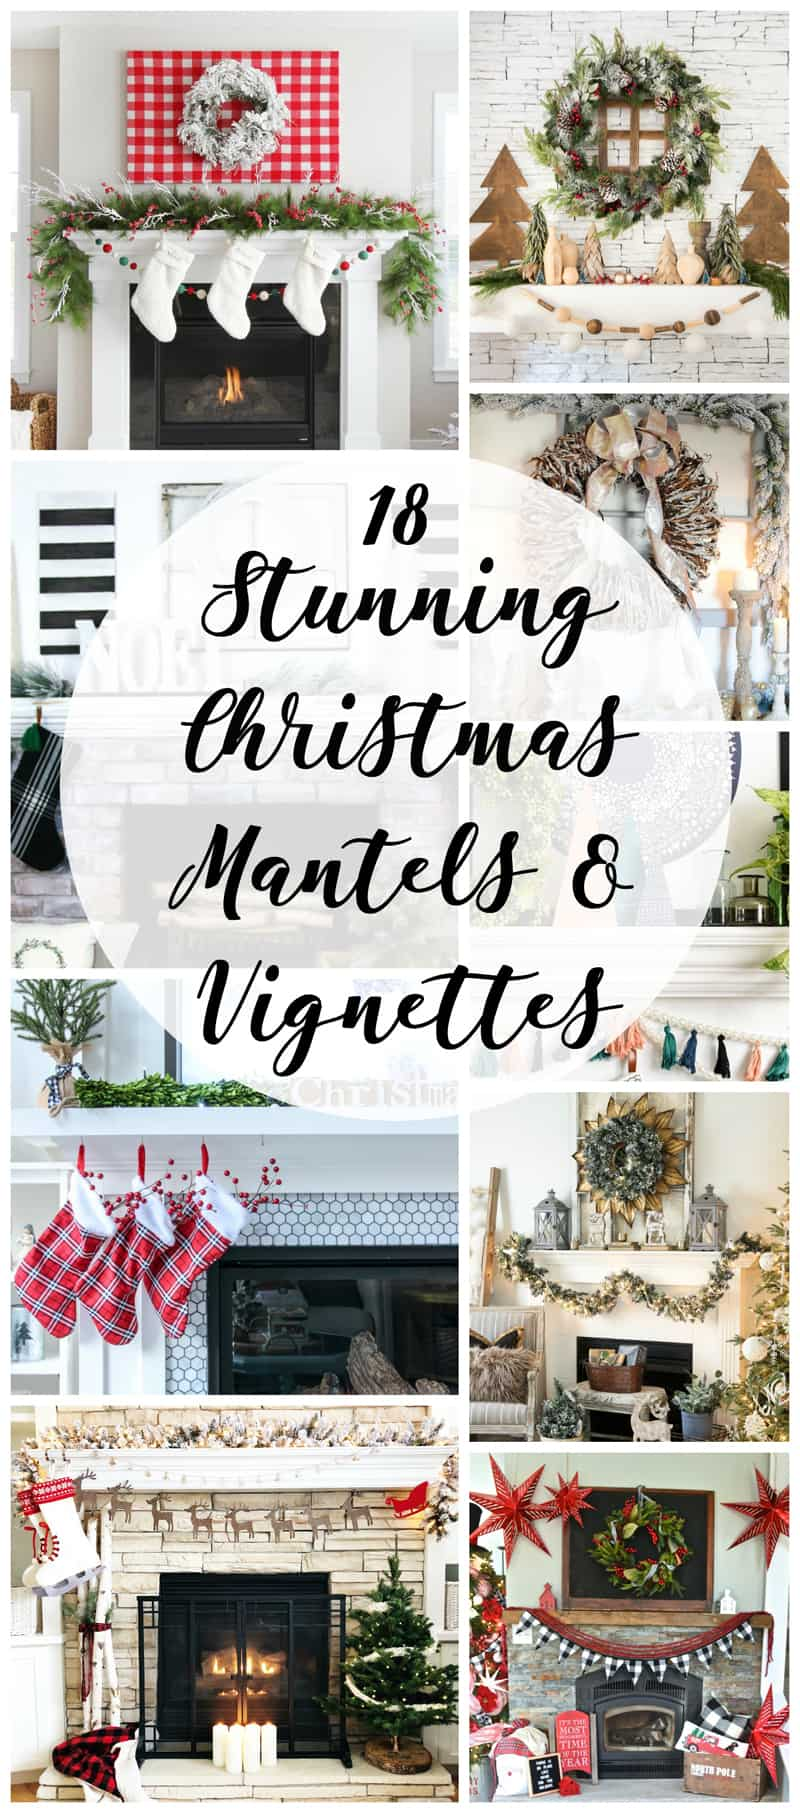 You'll love the gorgeous inspiration in this 18 stunning Christmas Mantel and Vignettes